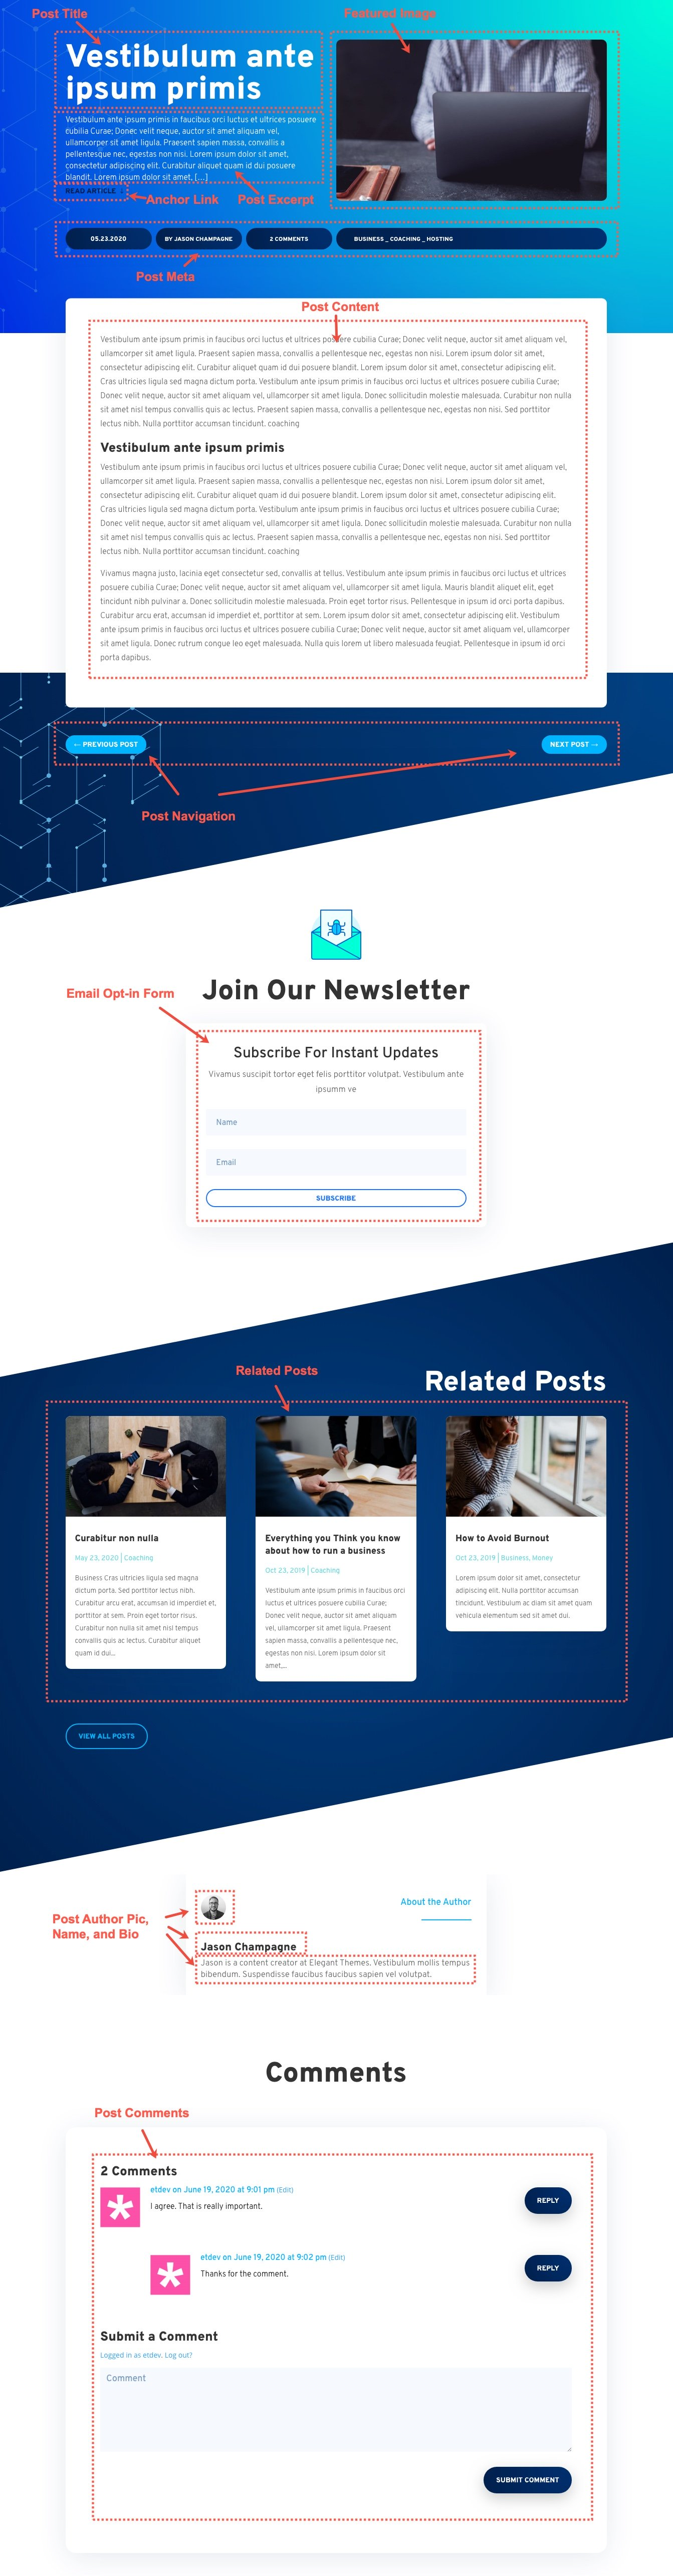 get-a-free-blog-post-template-for-divis-cyber-security-layout-pack-7 Get a FREE Blog Post Template for Divi's Cyber Security Layout Pack